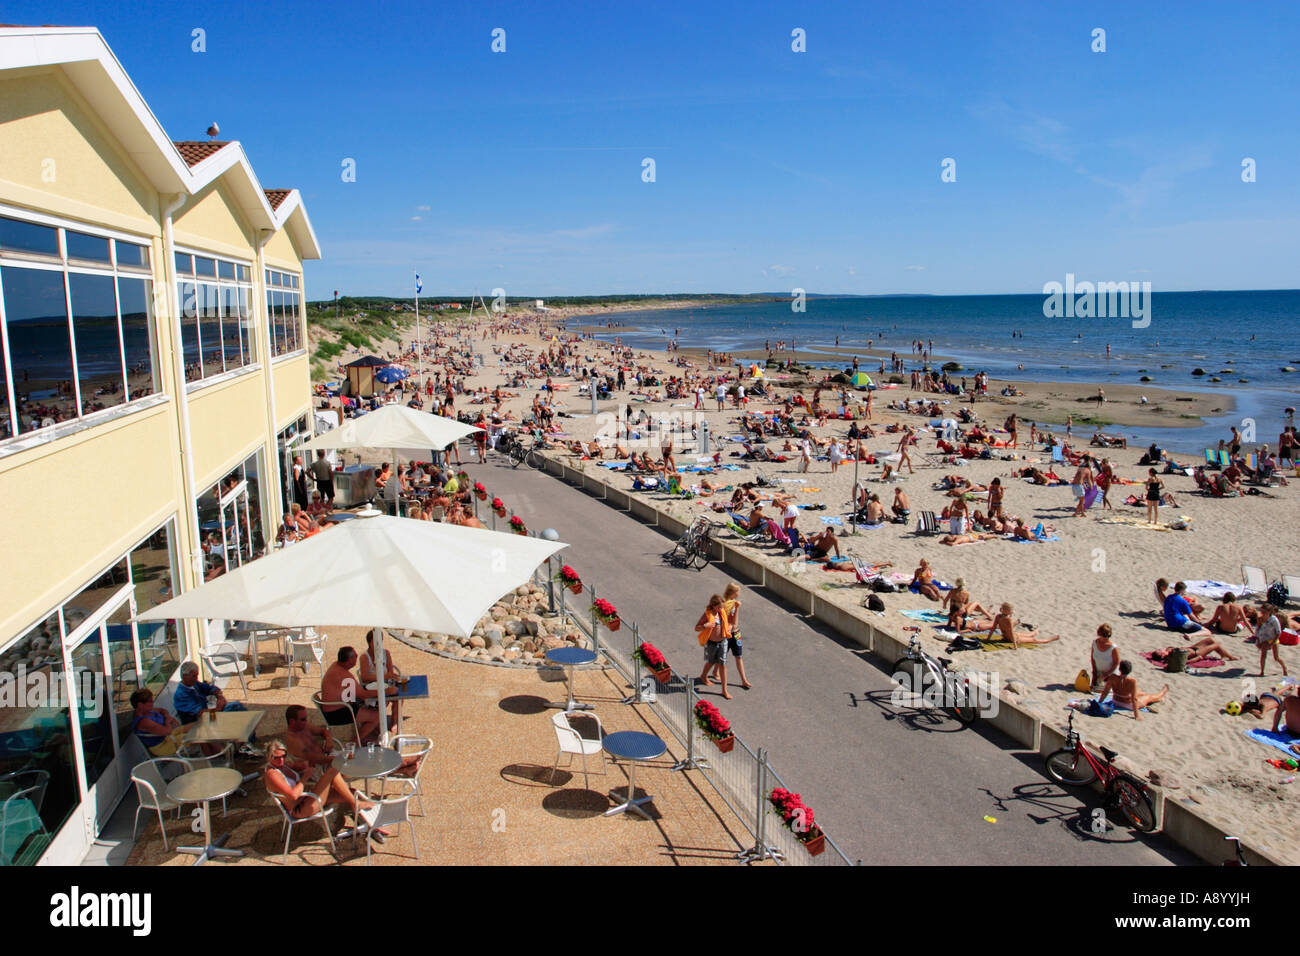 Restaurant on the beach - Stock Image